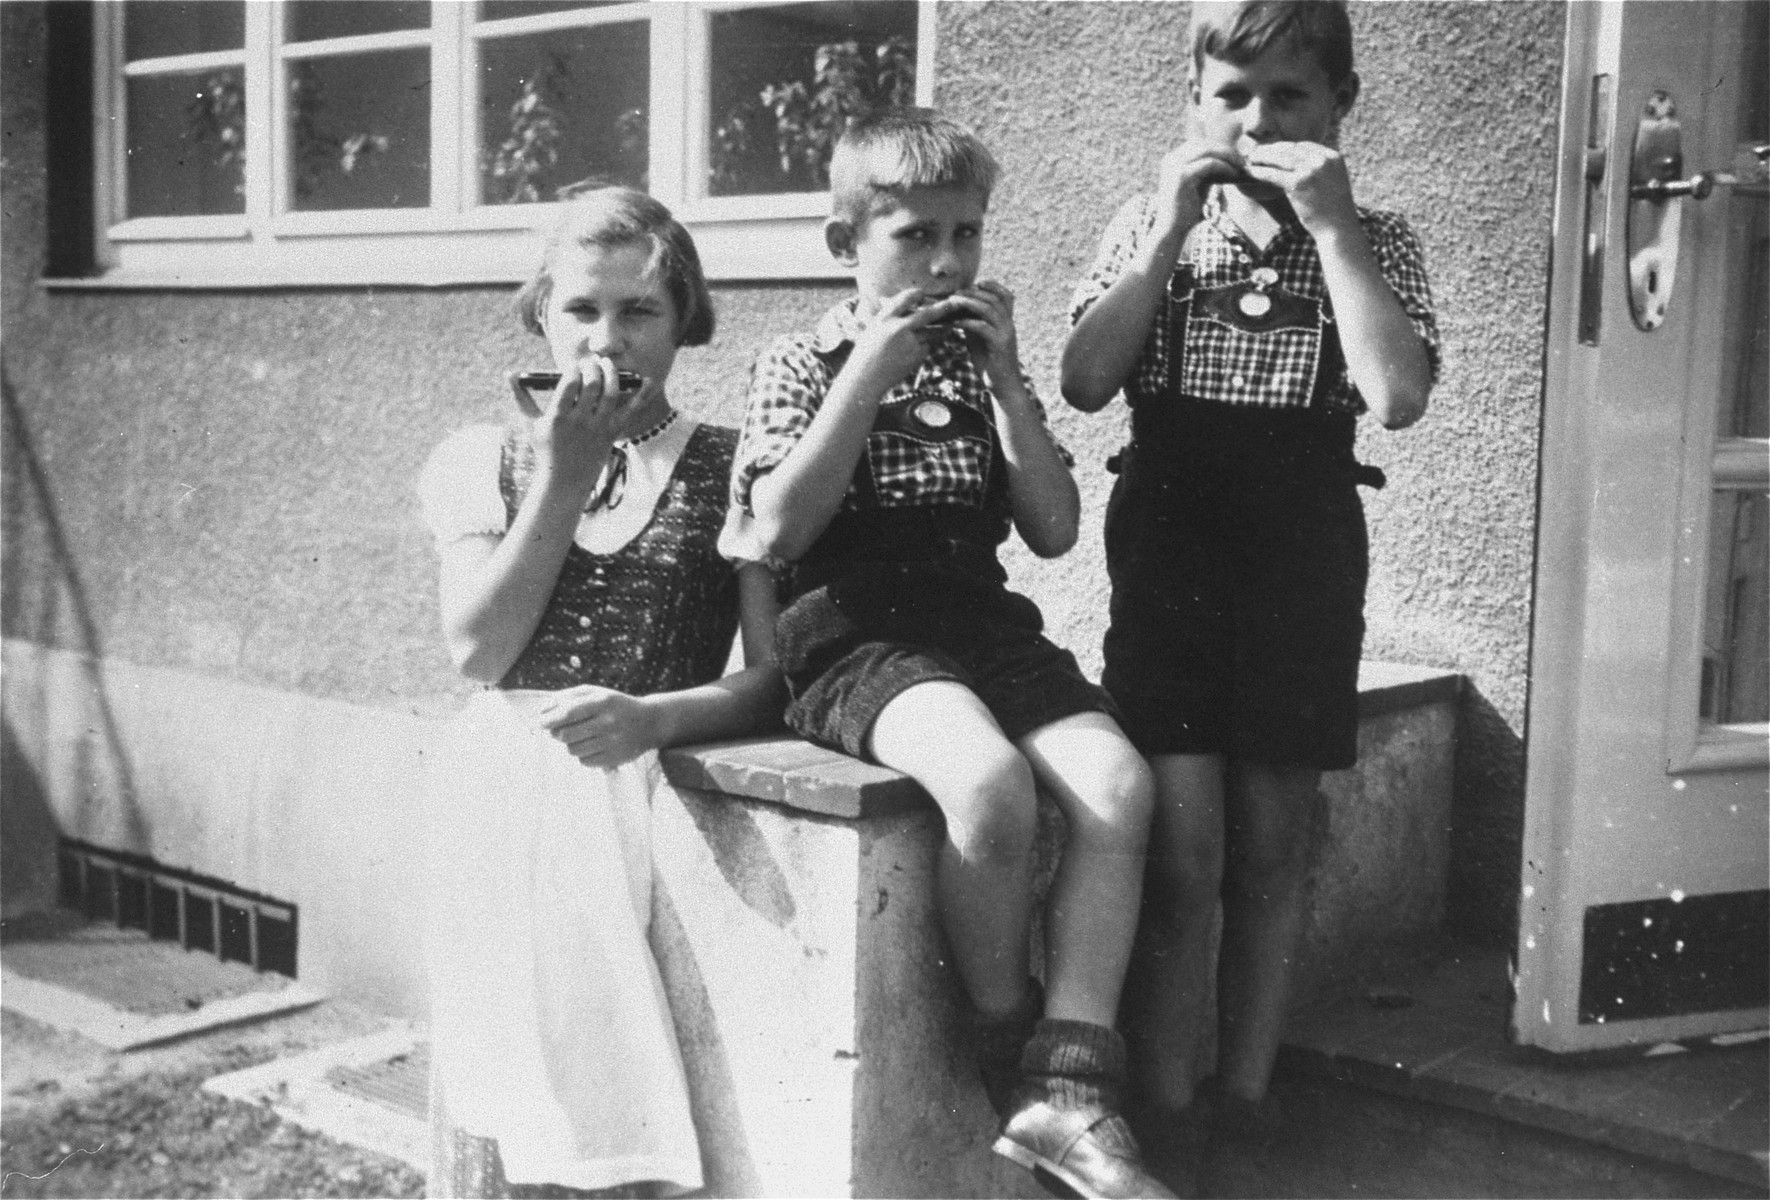 Elisabeth, Hans Werner, and Paul Gerhard Kusserow at home in Bad Lippspringe.    Because they were the children of Jehovah's Witnesses, all three were forcibly removed from school on 7 March 1939 and kept separated from their family, which was accused of spiritual and moral neglect, until their liberation in April 1945.